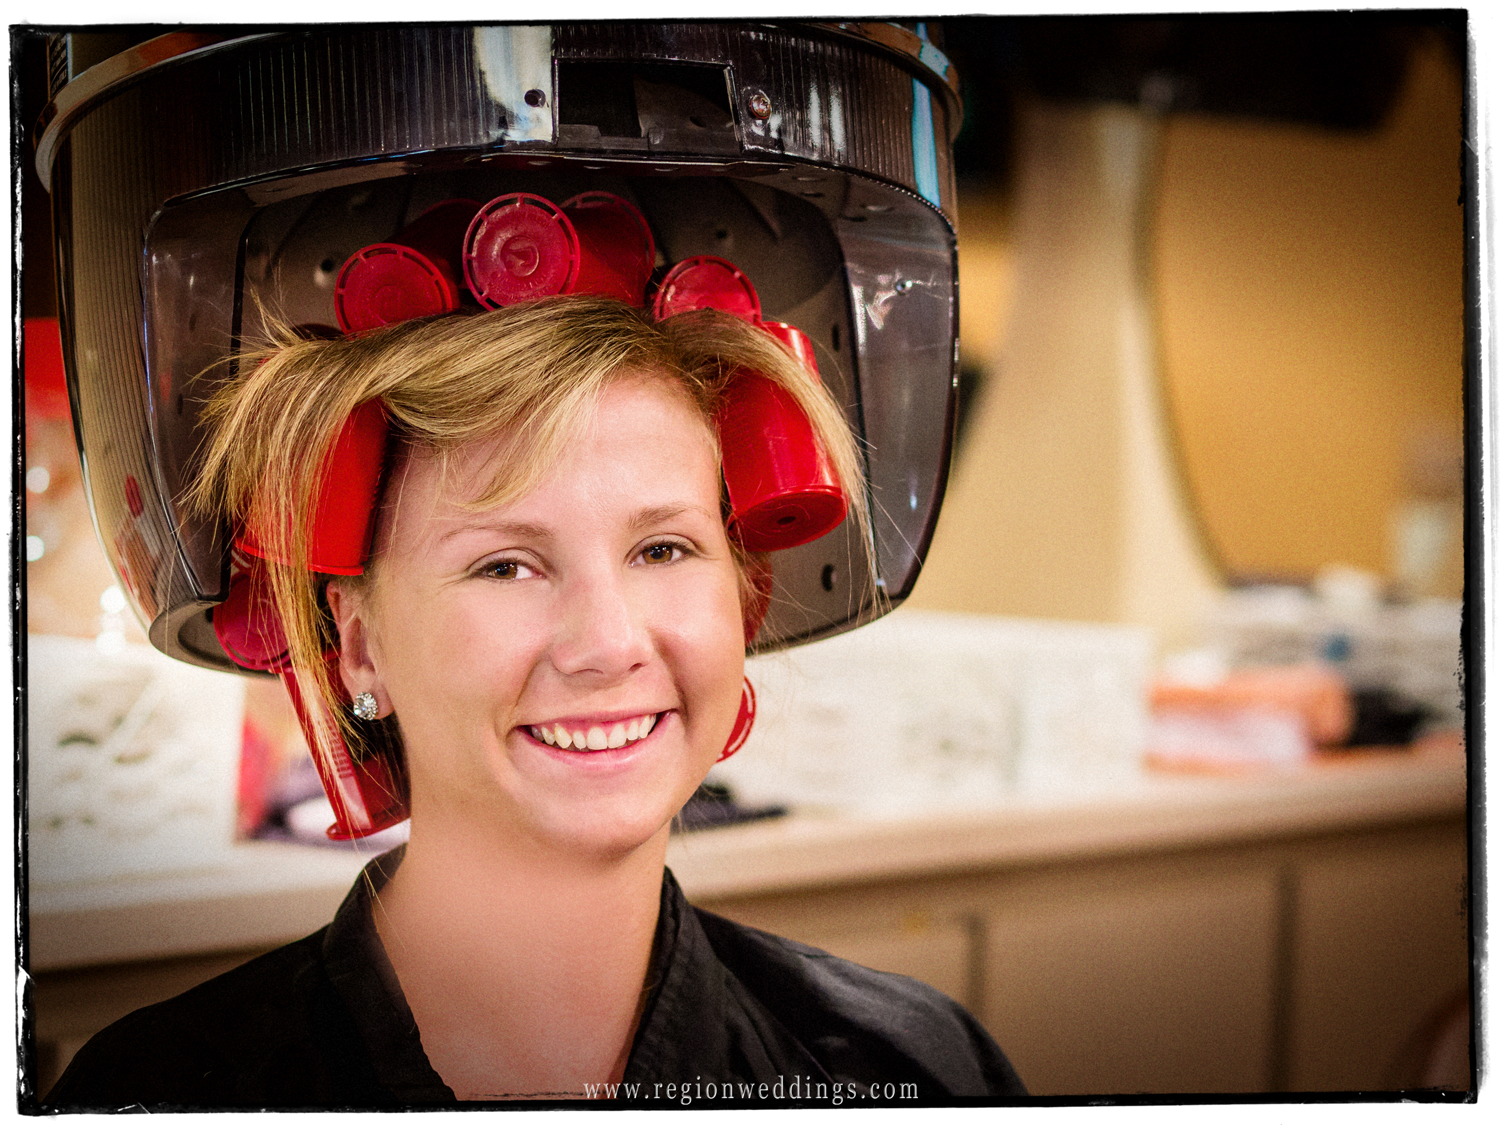 Bridesmaid smiles as she poses for a photo in curlers and under an old fashioned hair dryer.